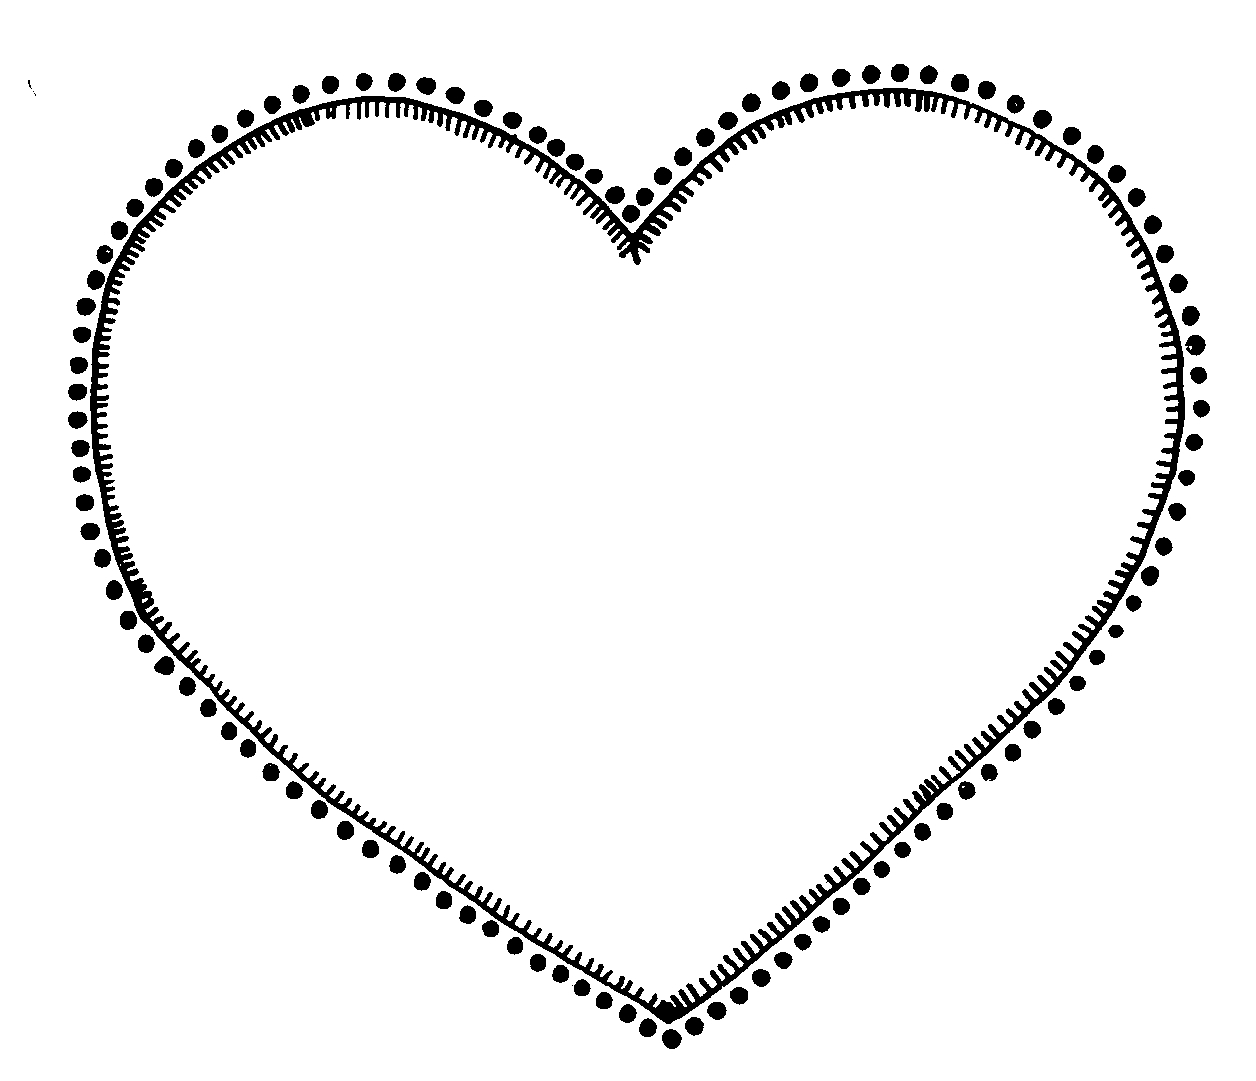 Hearts Clipart Heart Black And White Fre-Hearts clipart heart black and white free clipart images-12